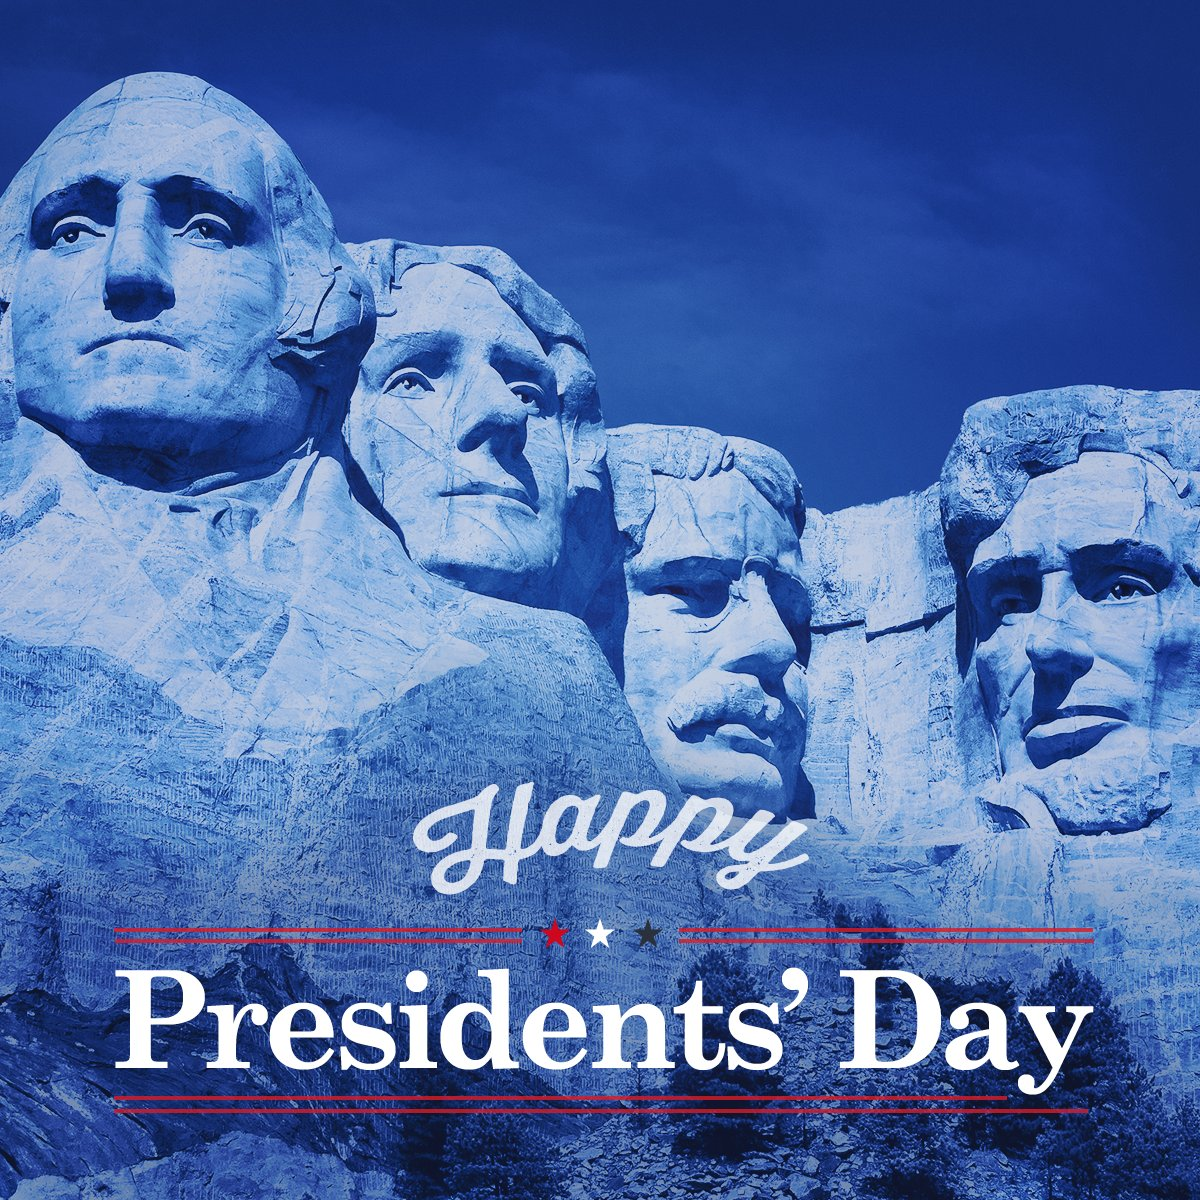 We're blessed to live in a country that honors heritage. Happy Presidents' Day, America!